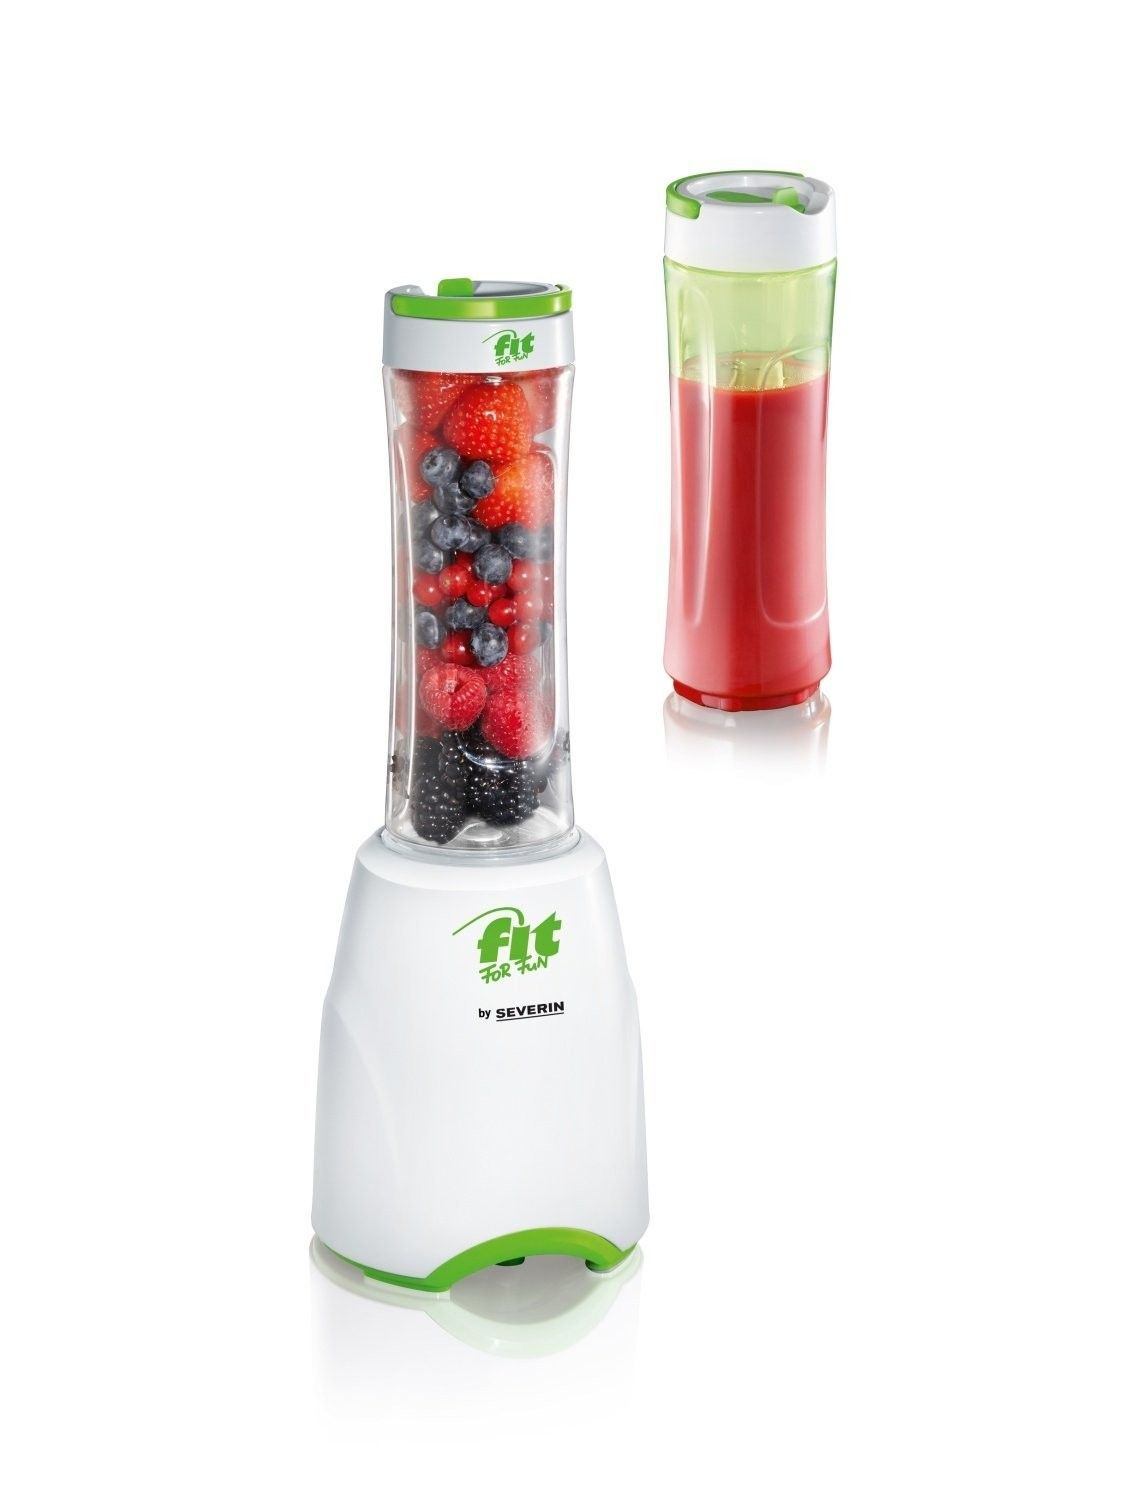 Severin Smoothie Mix Go 39 99 Mixing Blending Severin Free